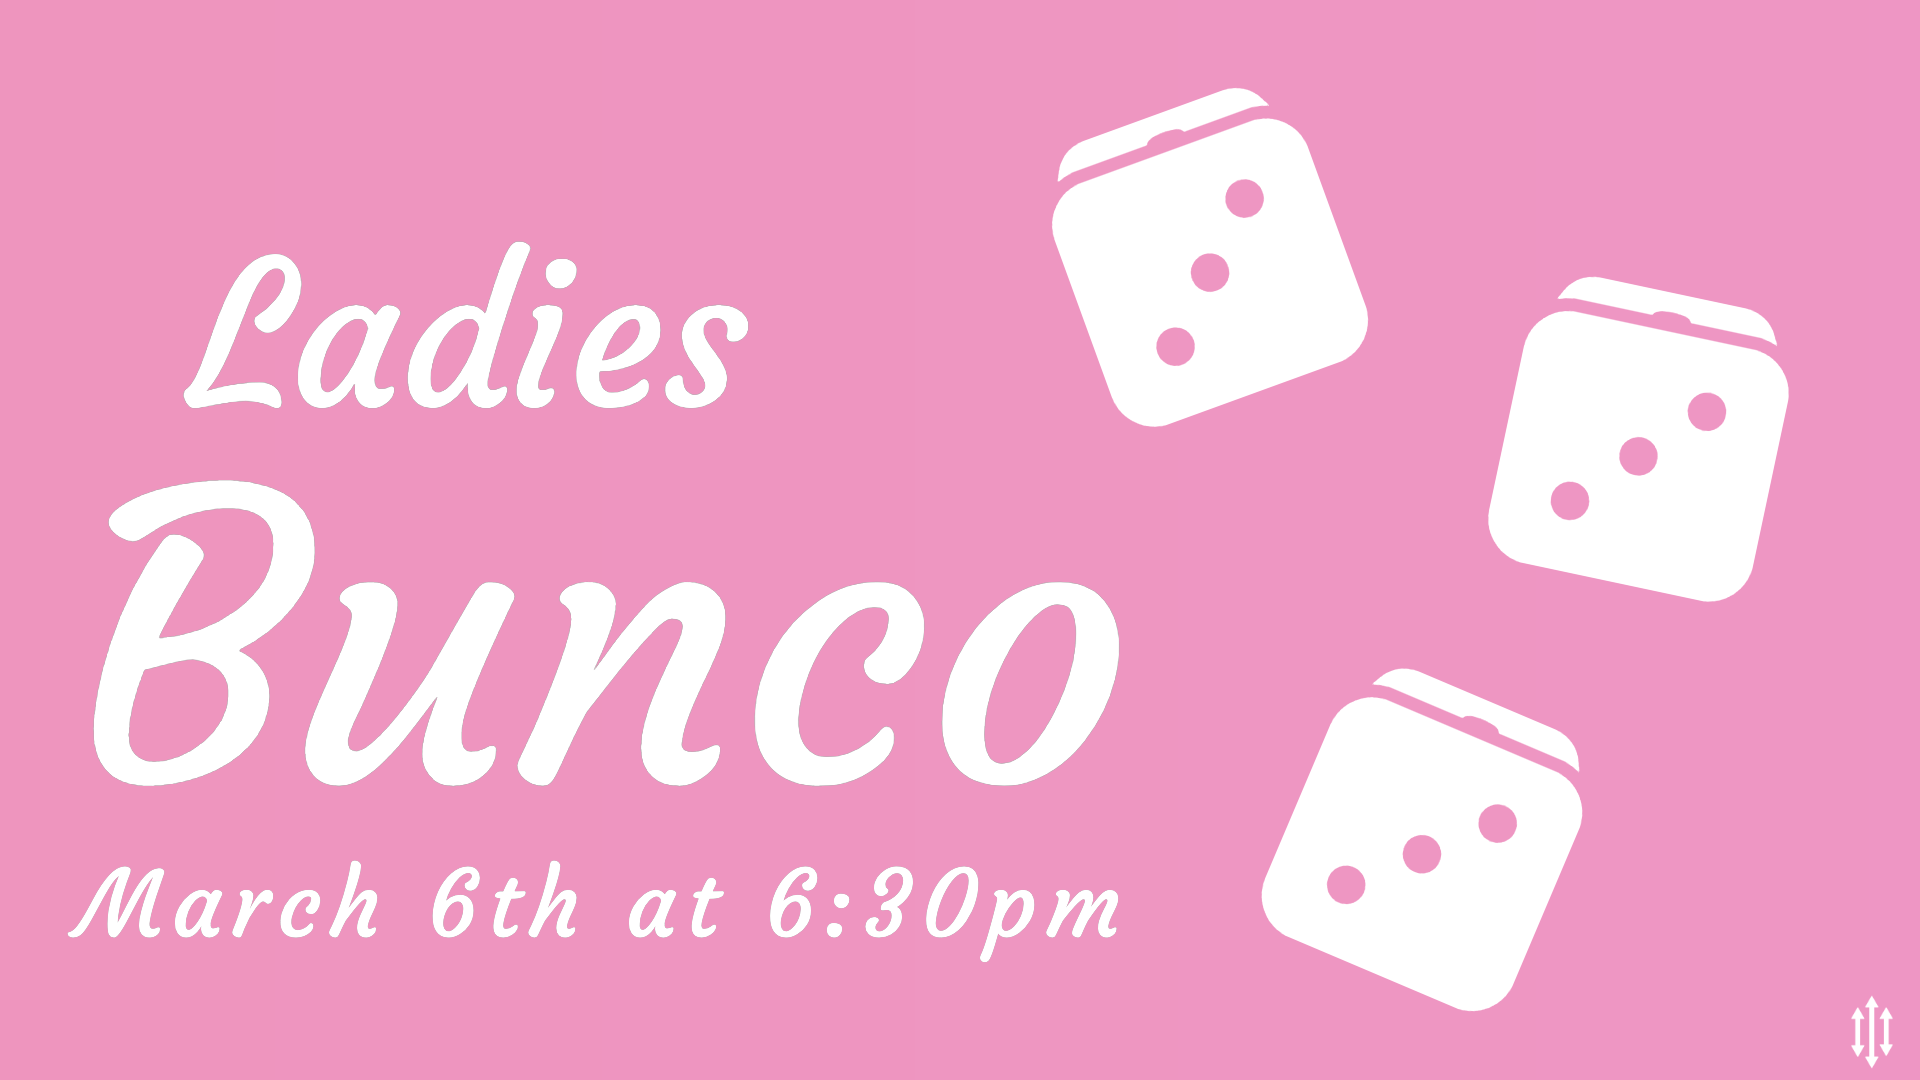 Ladies Bunco image